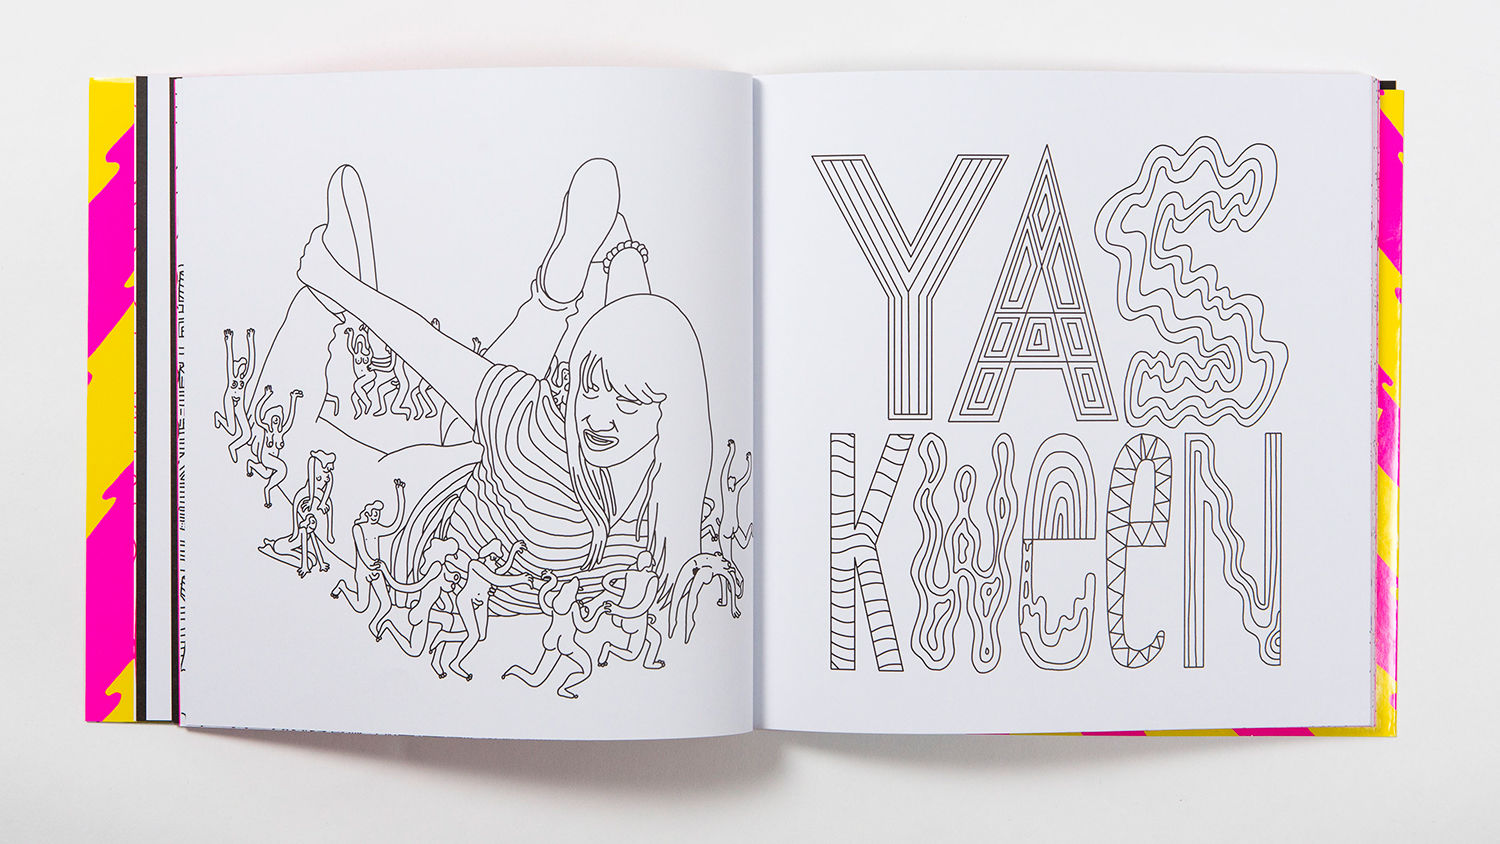 From The Broad City Colouring Book Courtesy Mike Perry Laurence King Comedy Central